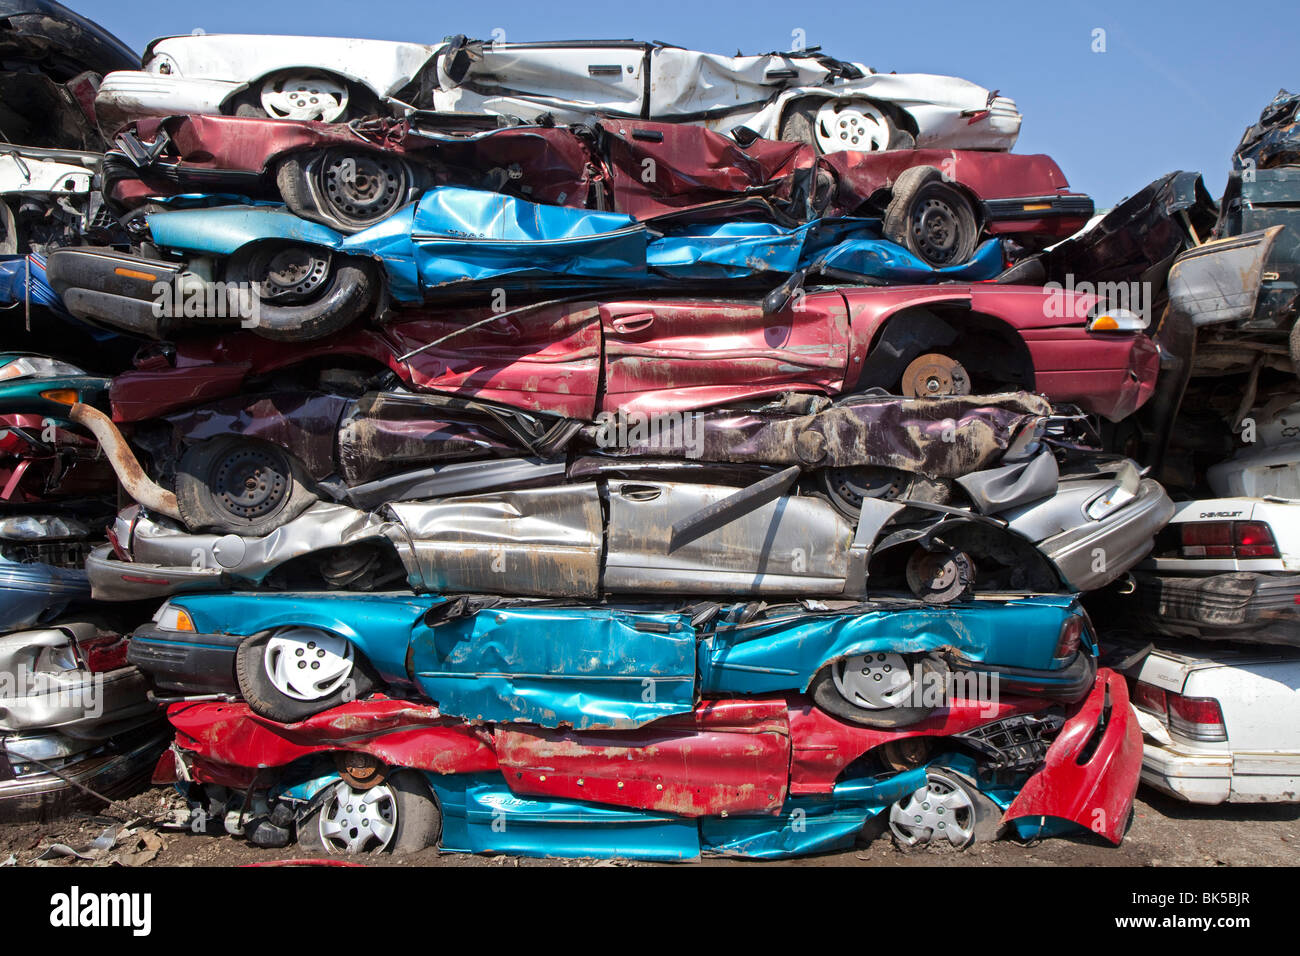 Detroit, Michigan - Junk cars crushed and ready for recycling at a ...